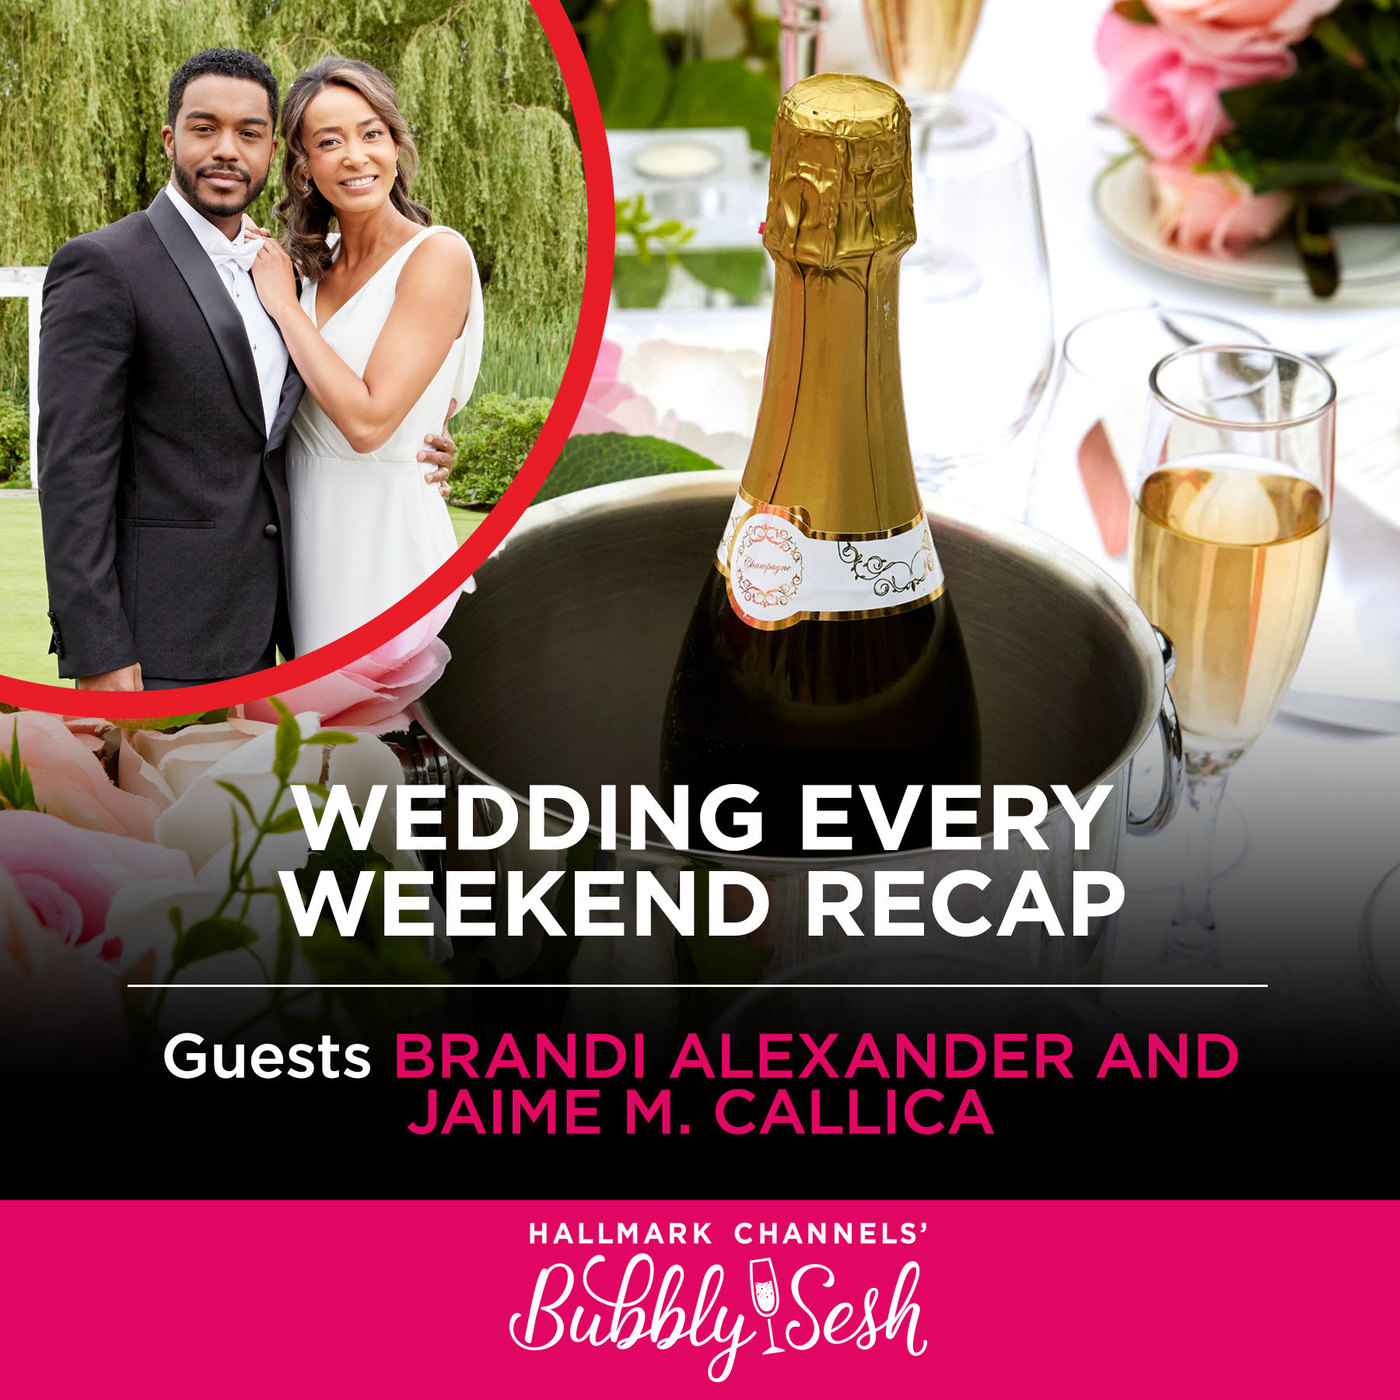 Wedding Every Weekend Recap with Guests Brandi Alexander and Jaime M. Callica